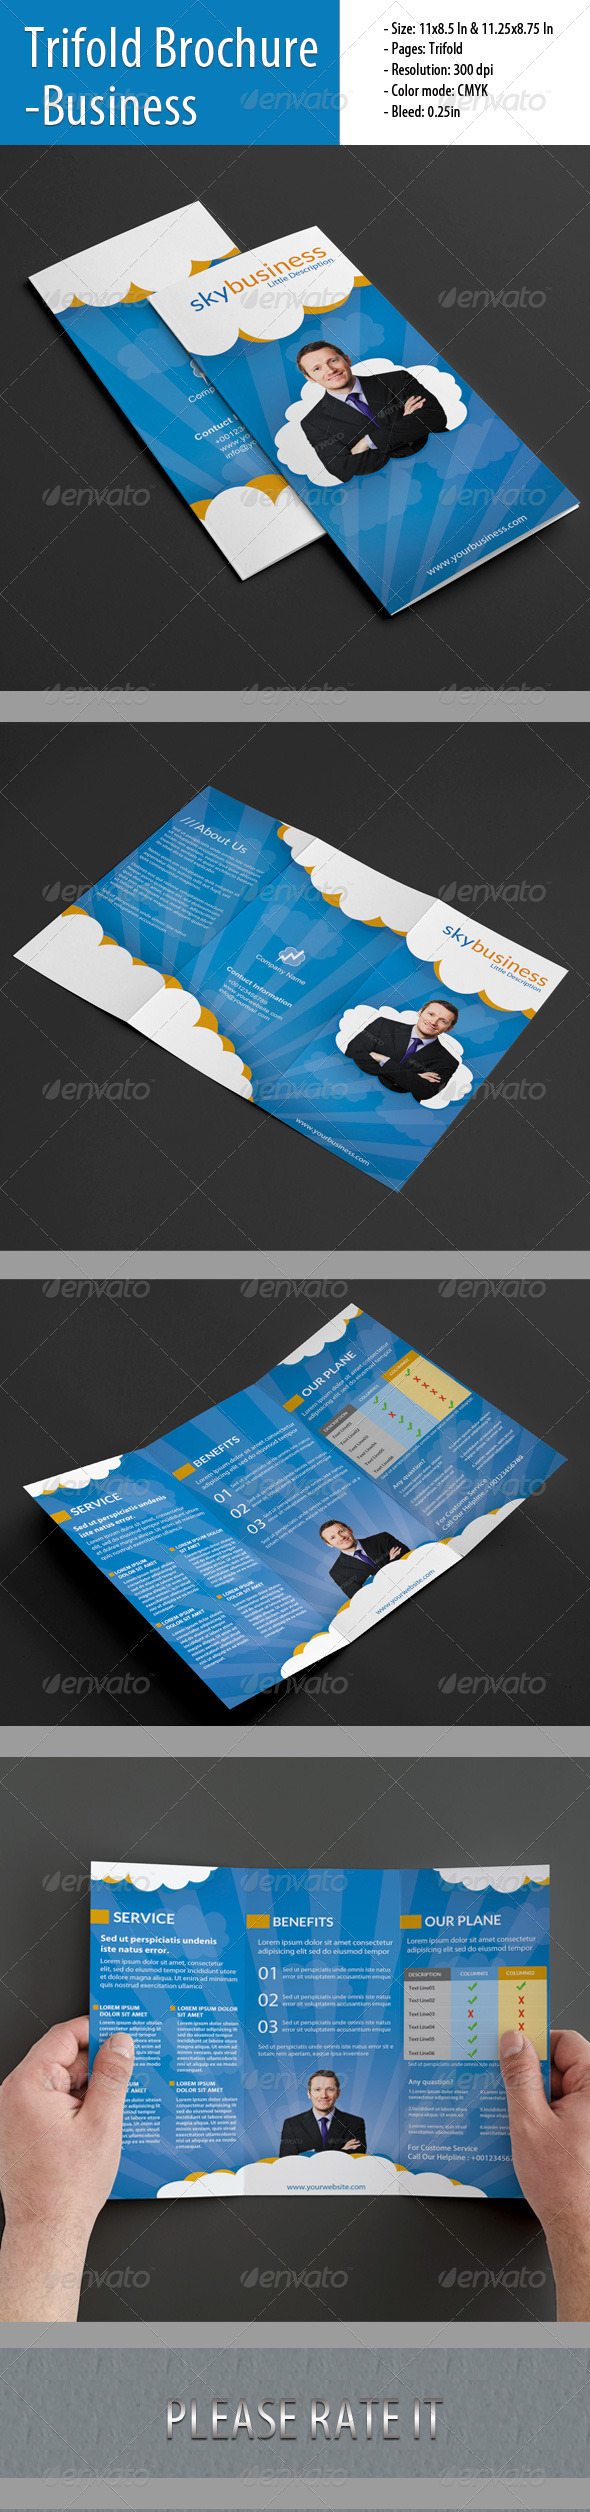 GraphicRiver Trifold Brochure For Business 4803777